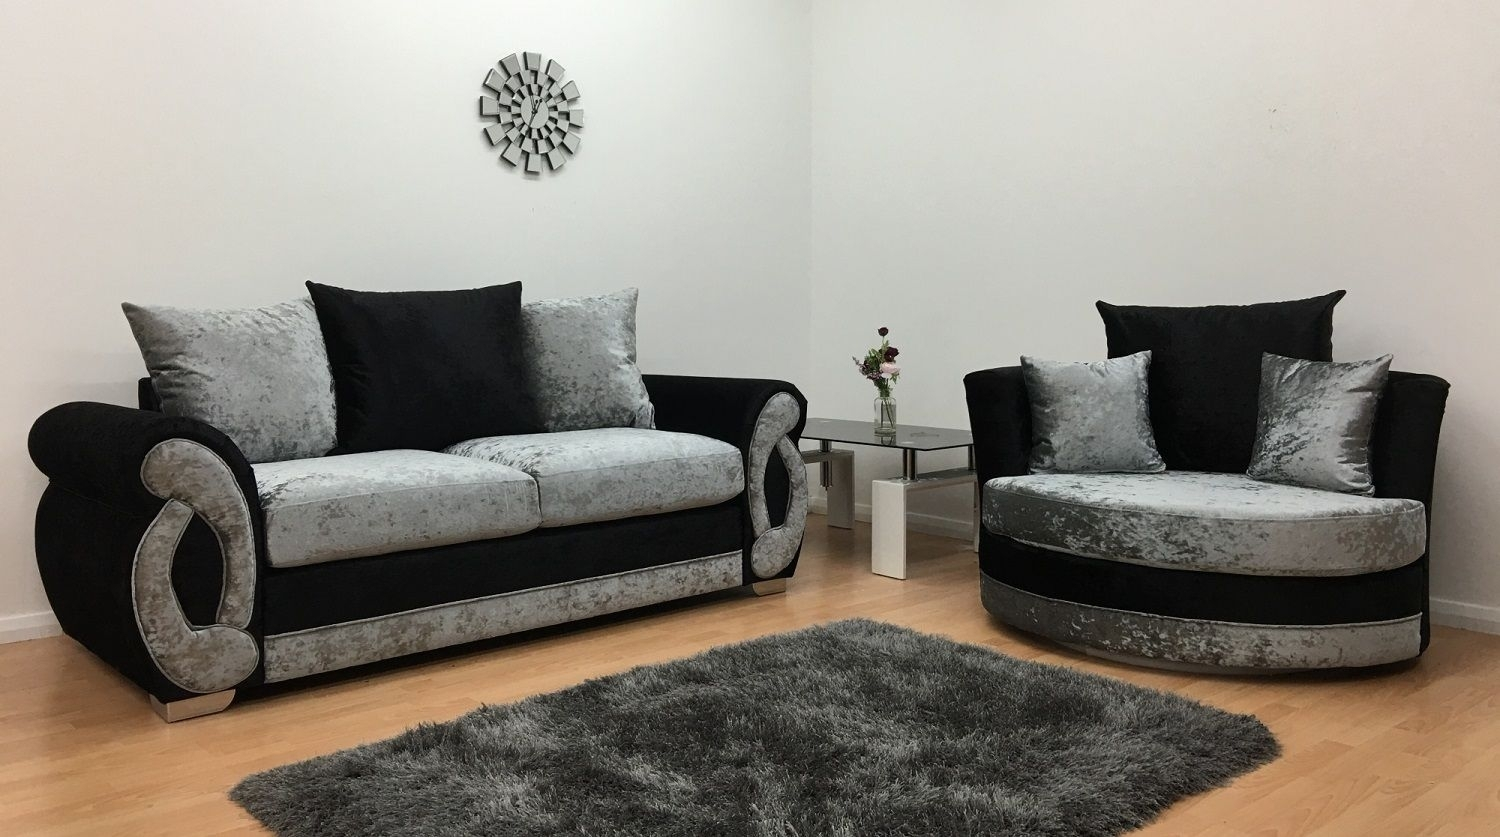 Furnish365 | Chloe 3 Seater And Cuddle Chair – Black & Silver For 3 Seater Sofas And Cuddle Chairs (View 7 of 10)